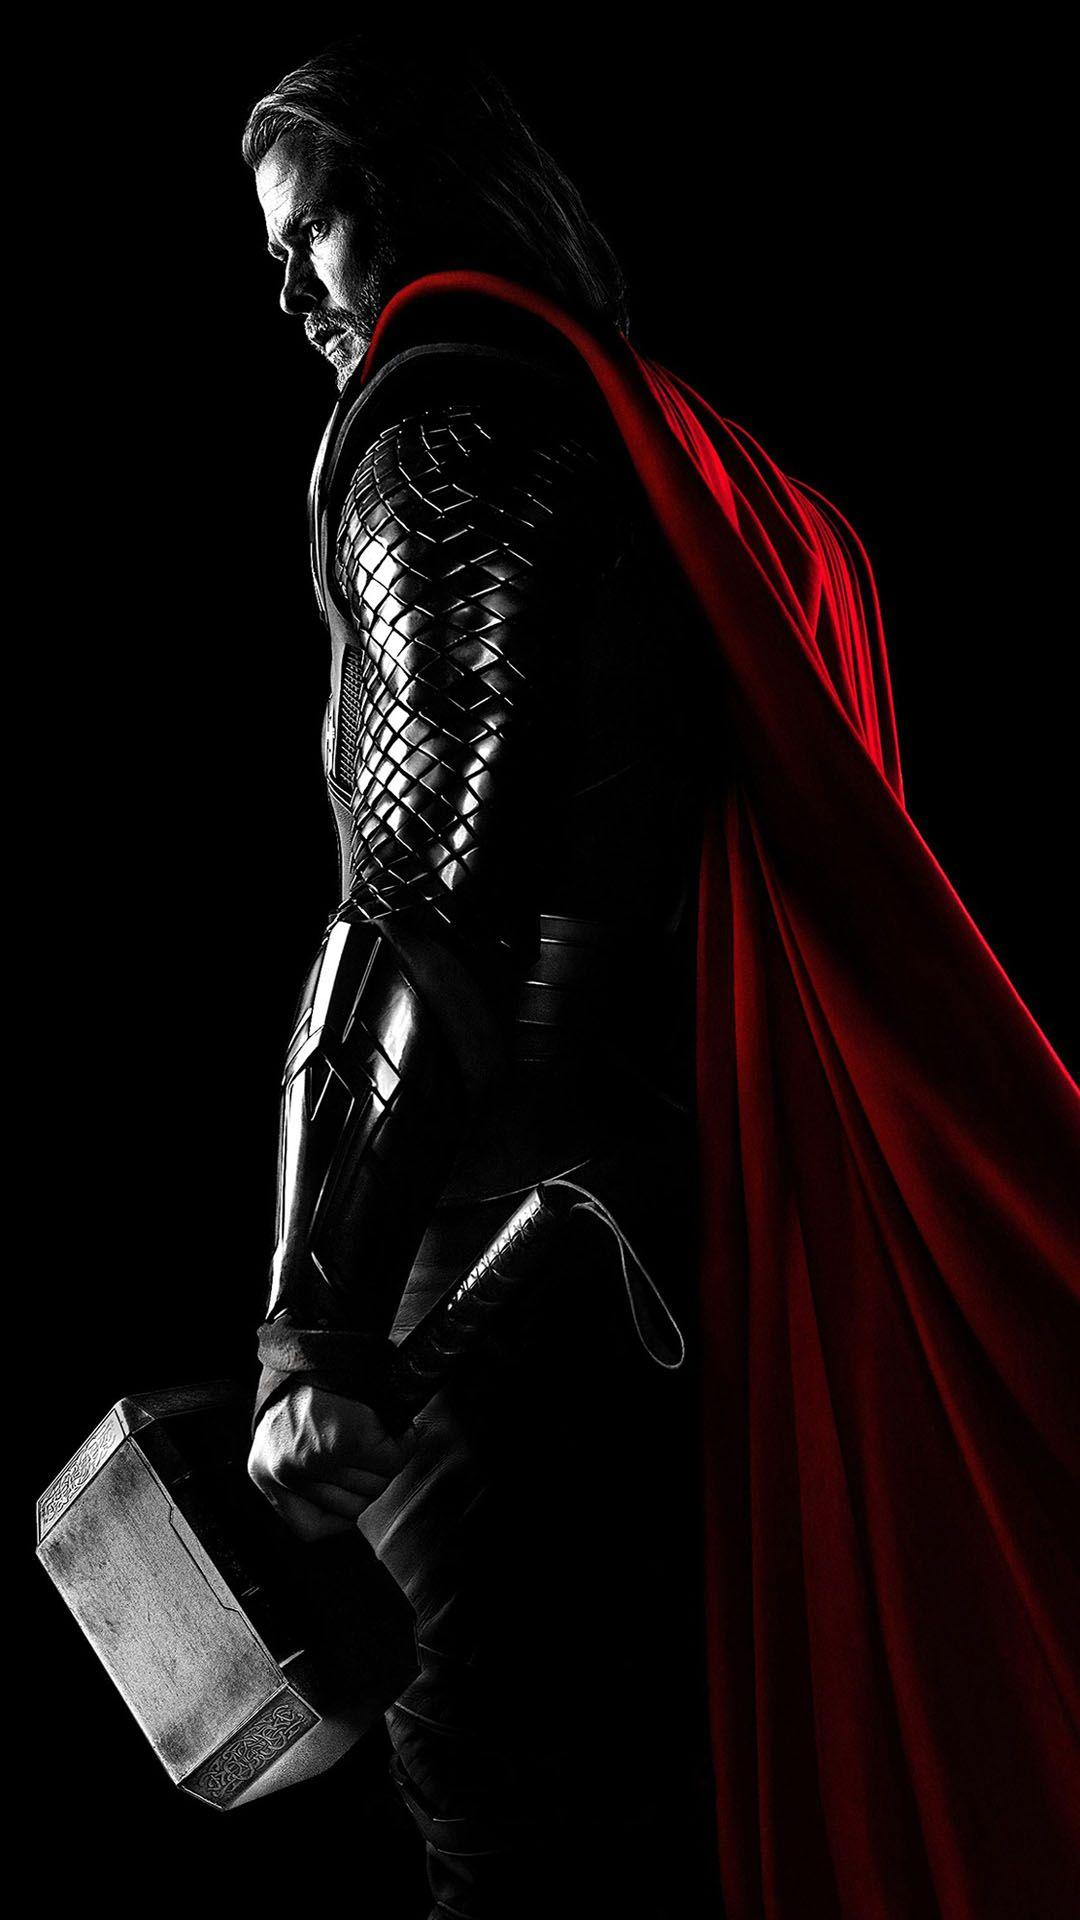 Mobile Hd Wallpapers thor wallpapers hd ...pinterest